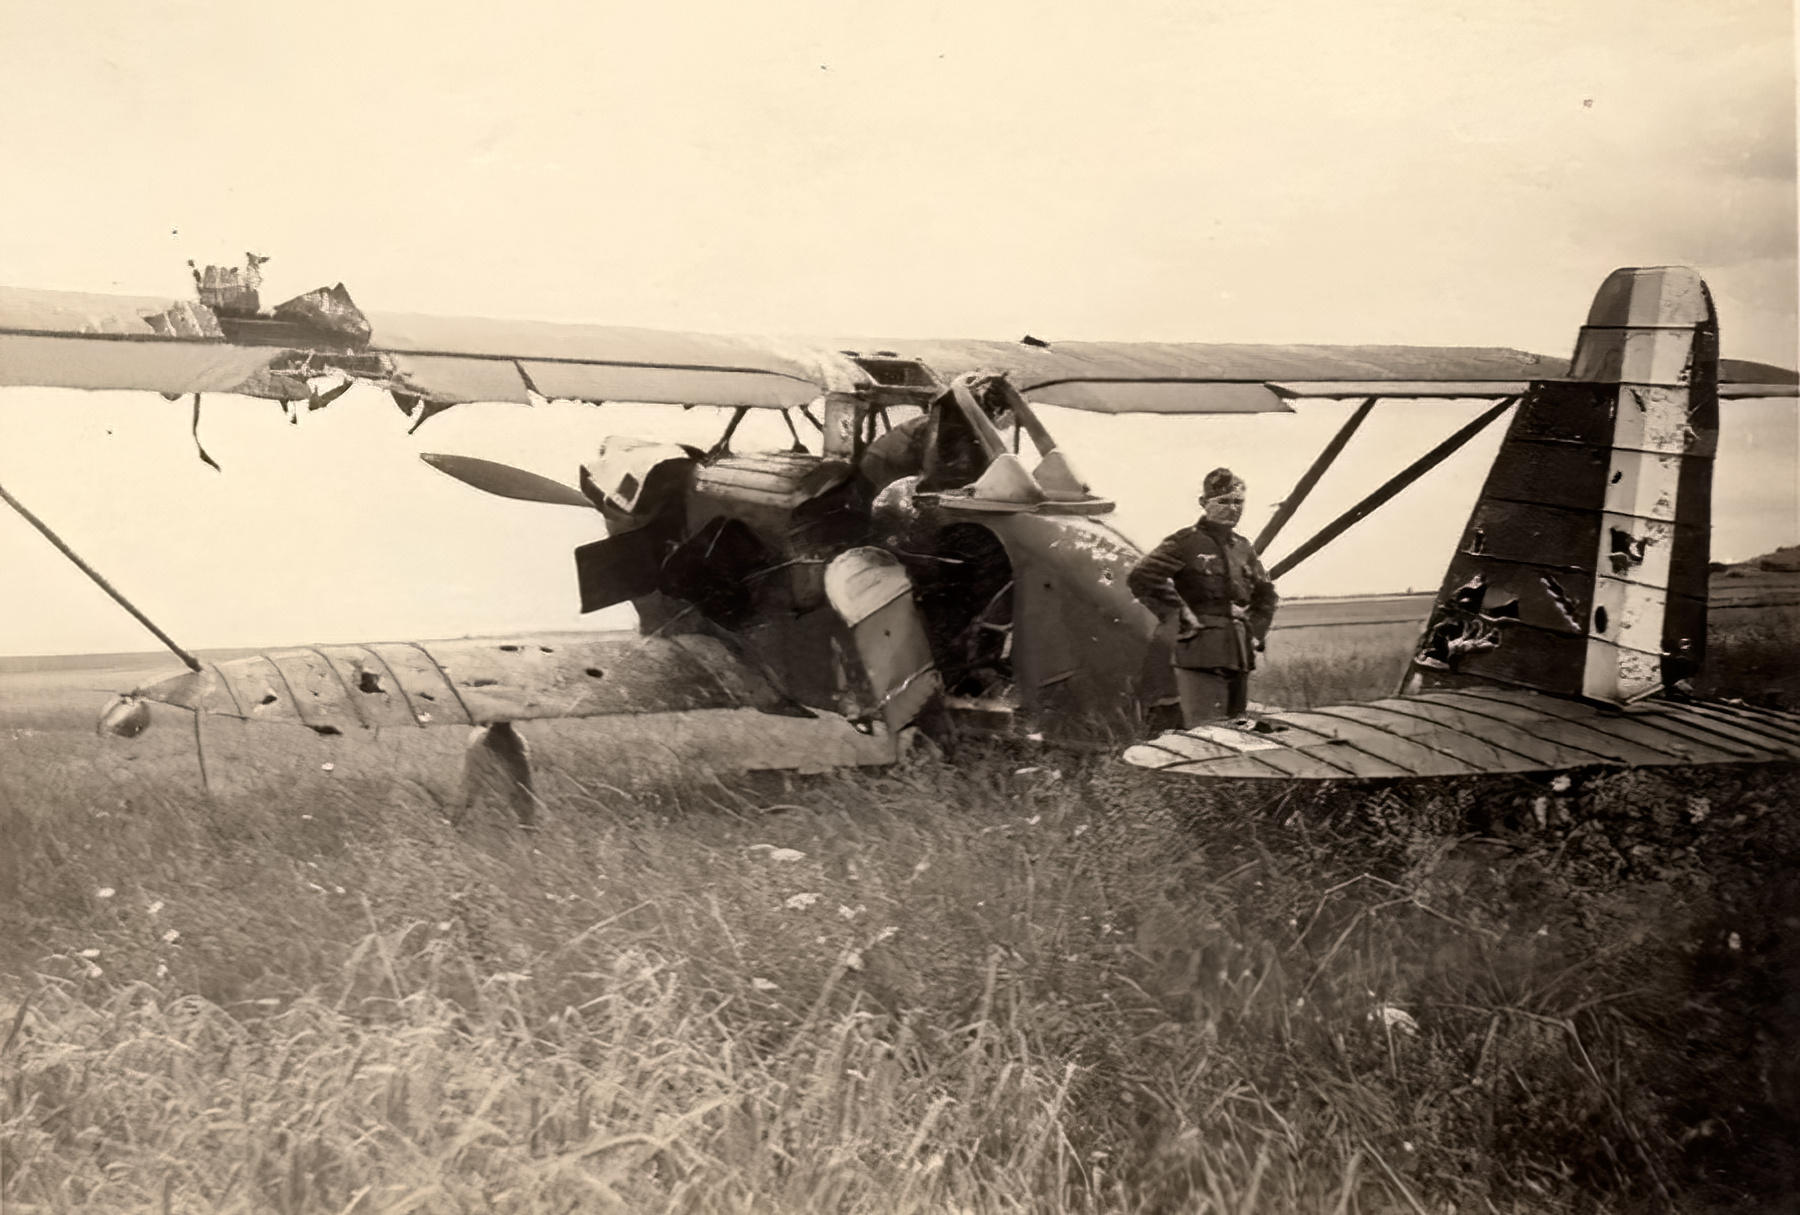 French Airforce Breguet 270 grounded at a French airbase France 1940 ebay 02